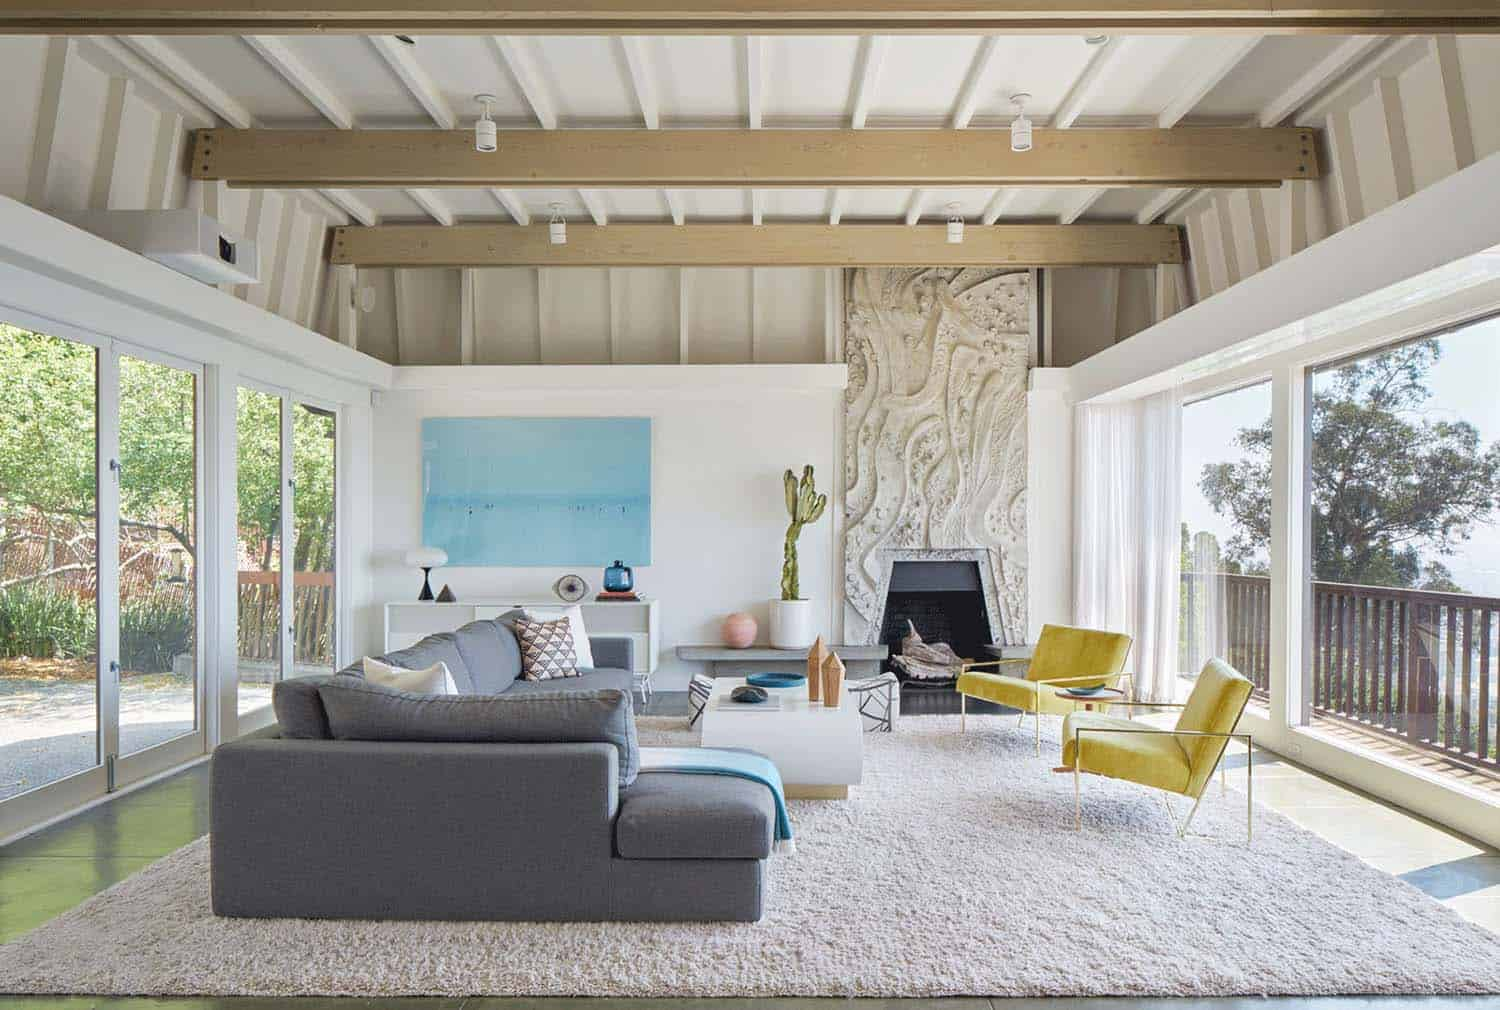 Mid century modern residence in berkley hills gets for Mid century modern residential architecture